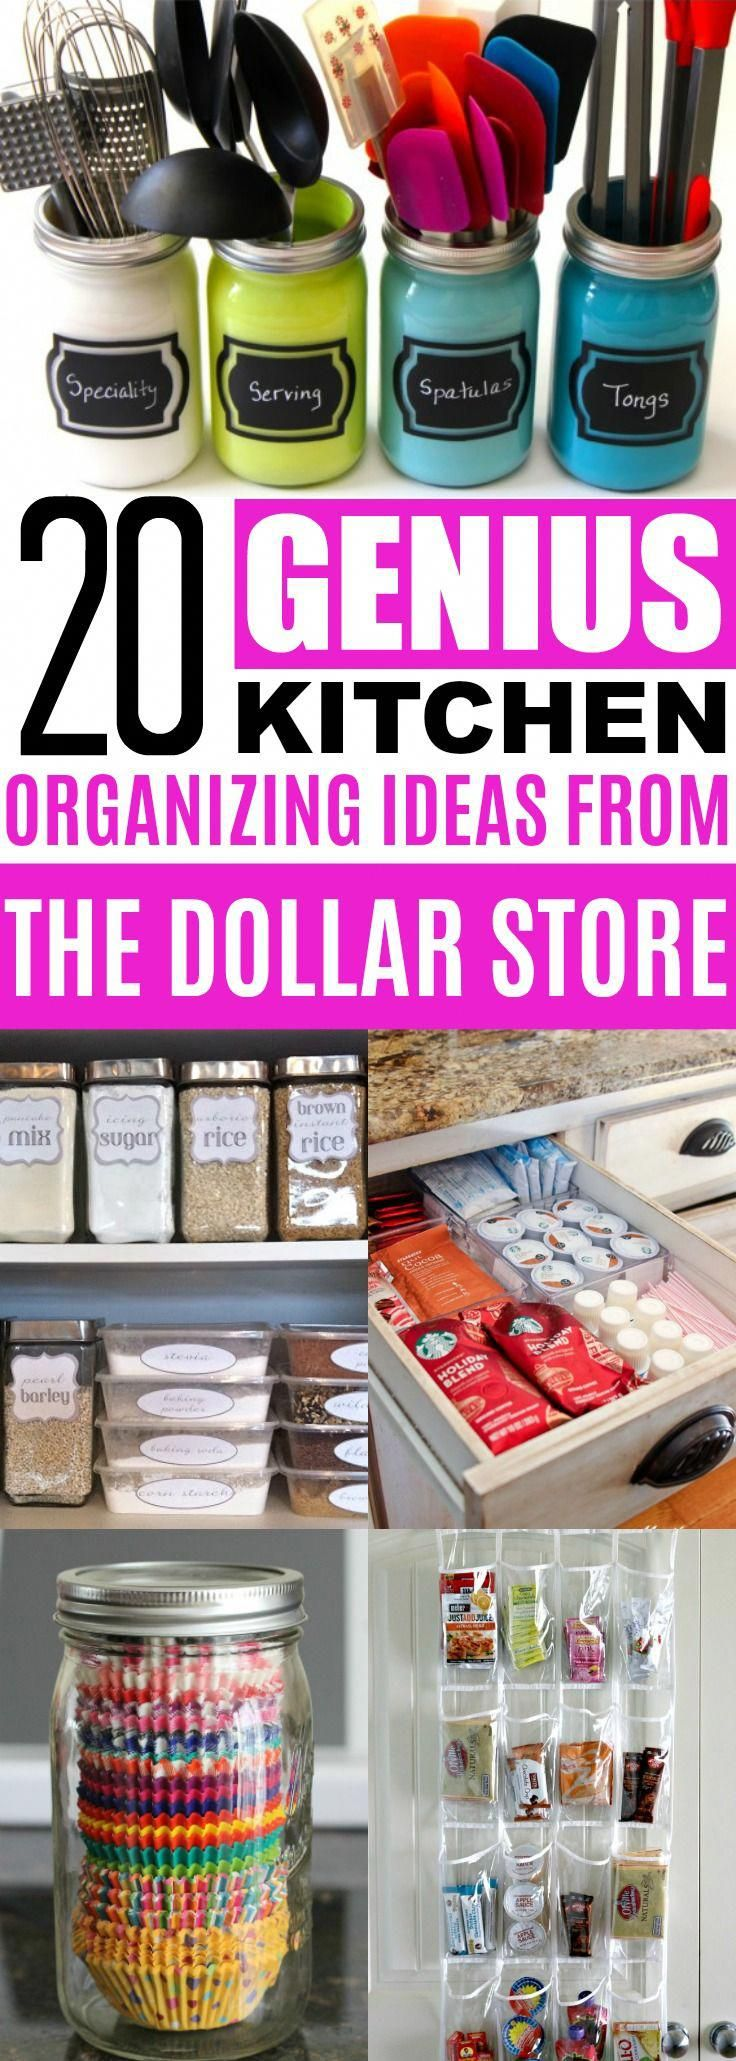 20 Clever Dollar Store Organization Ideas To Declutter Your Kitchen images